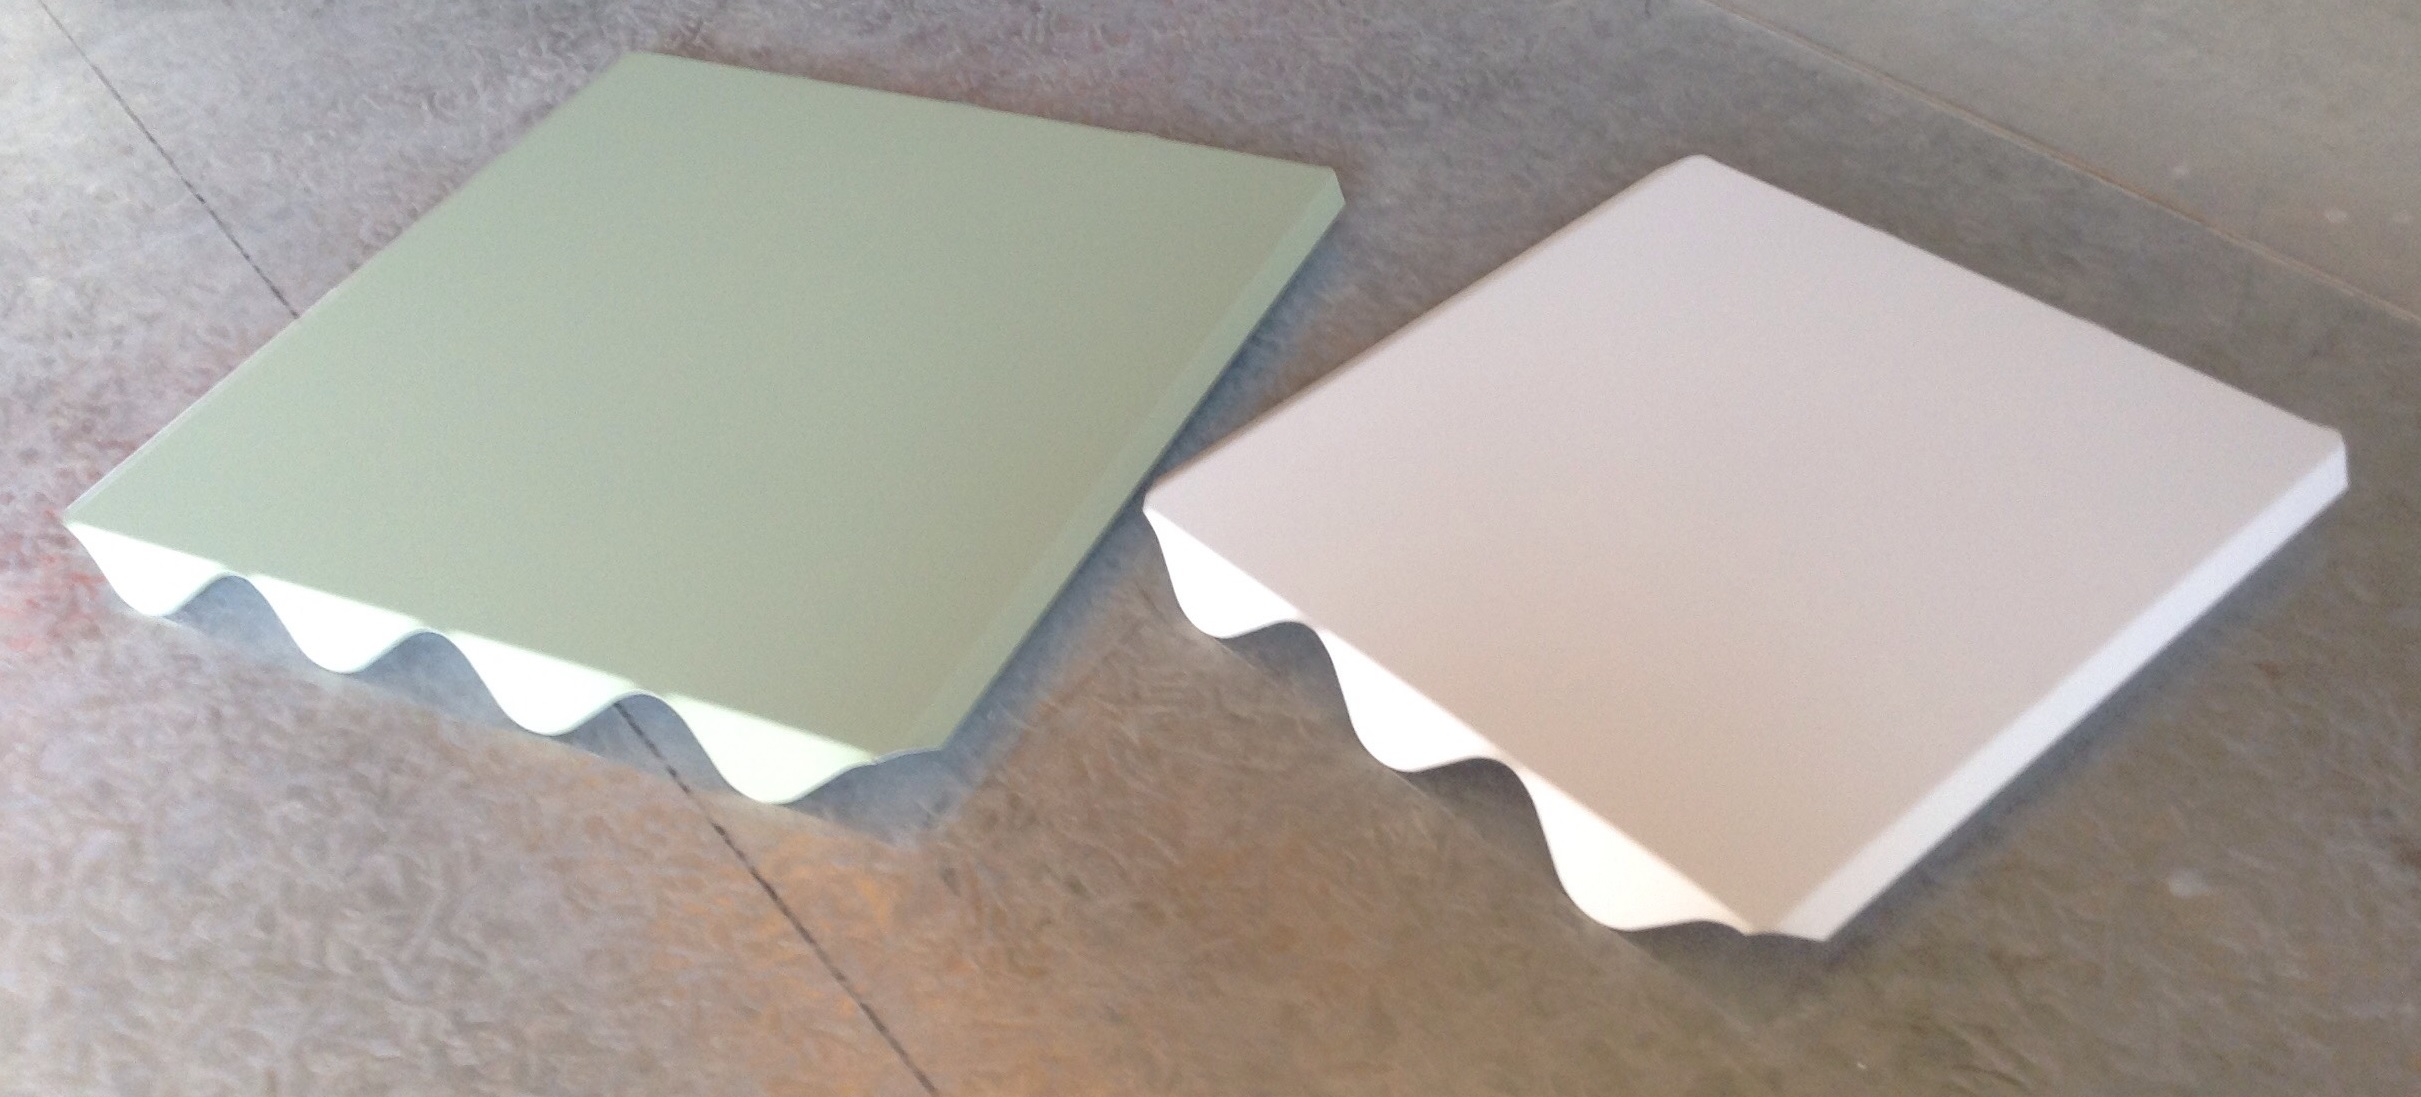 Mount Plates In Profile For Corrugated Custom Orb Steel